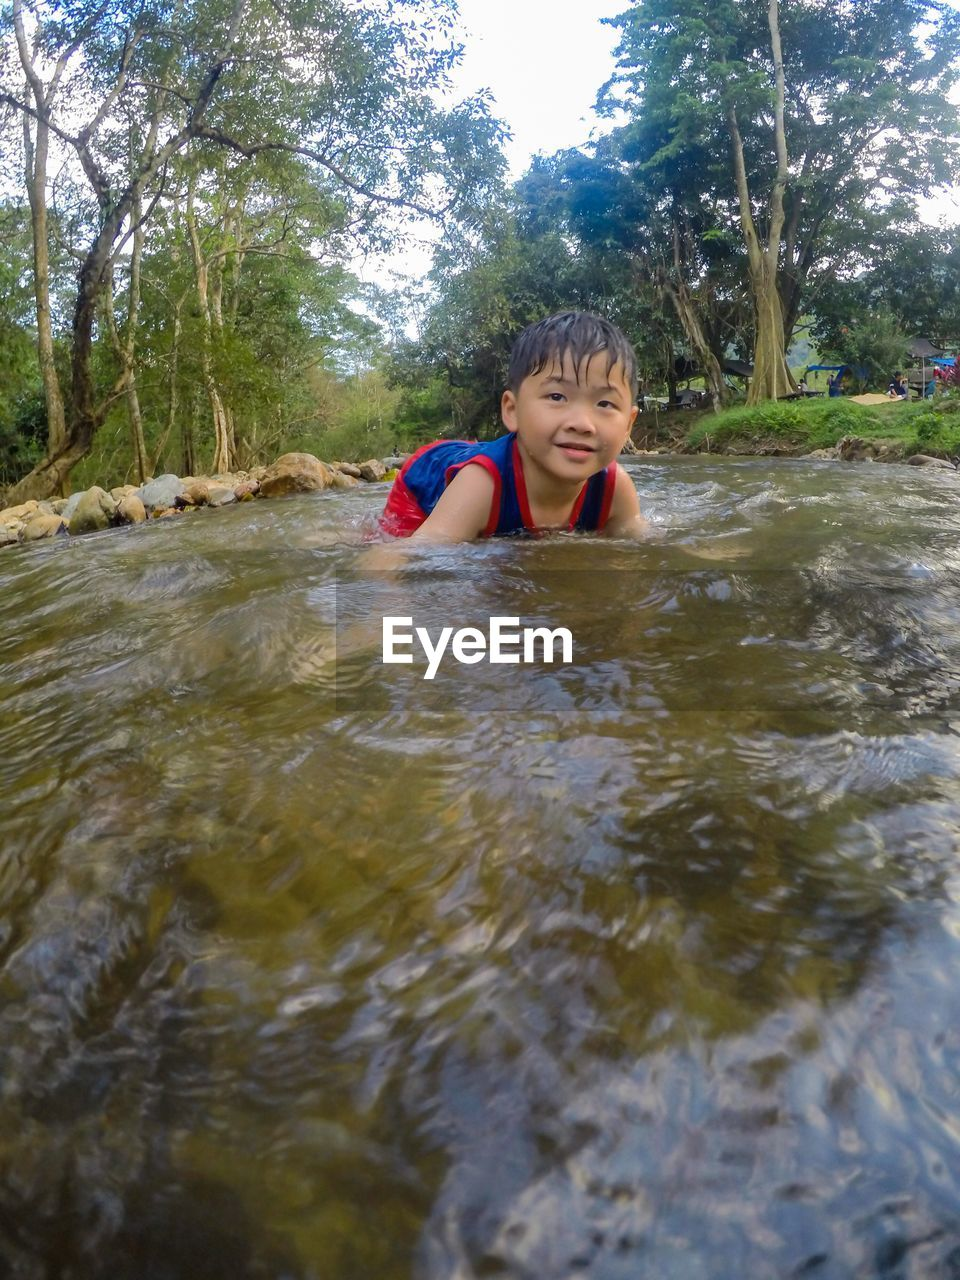 Smiling boy looking away while swimming in river against trees at forest